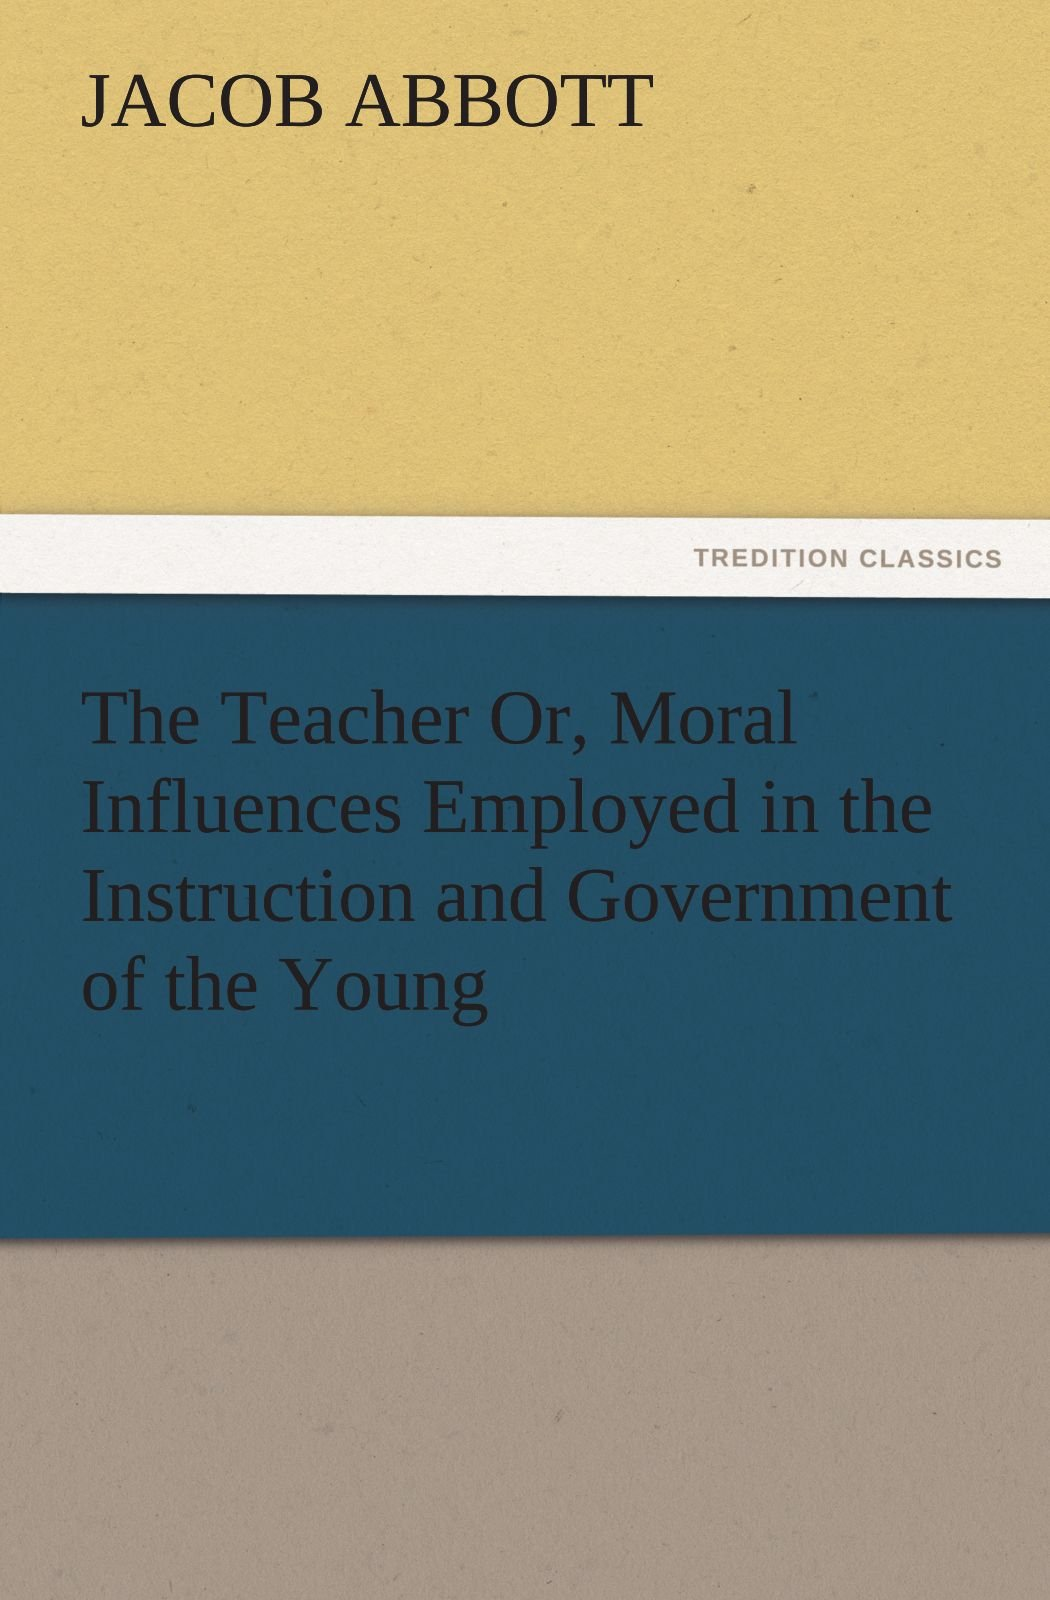 Download The Teacher Or, Moral Influences Employed in the Instruction and Government of the Young (TREDITION CLASSICS) PDF